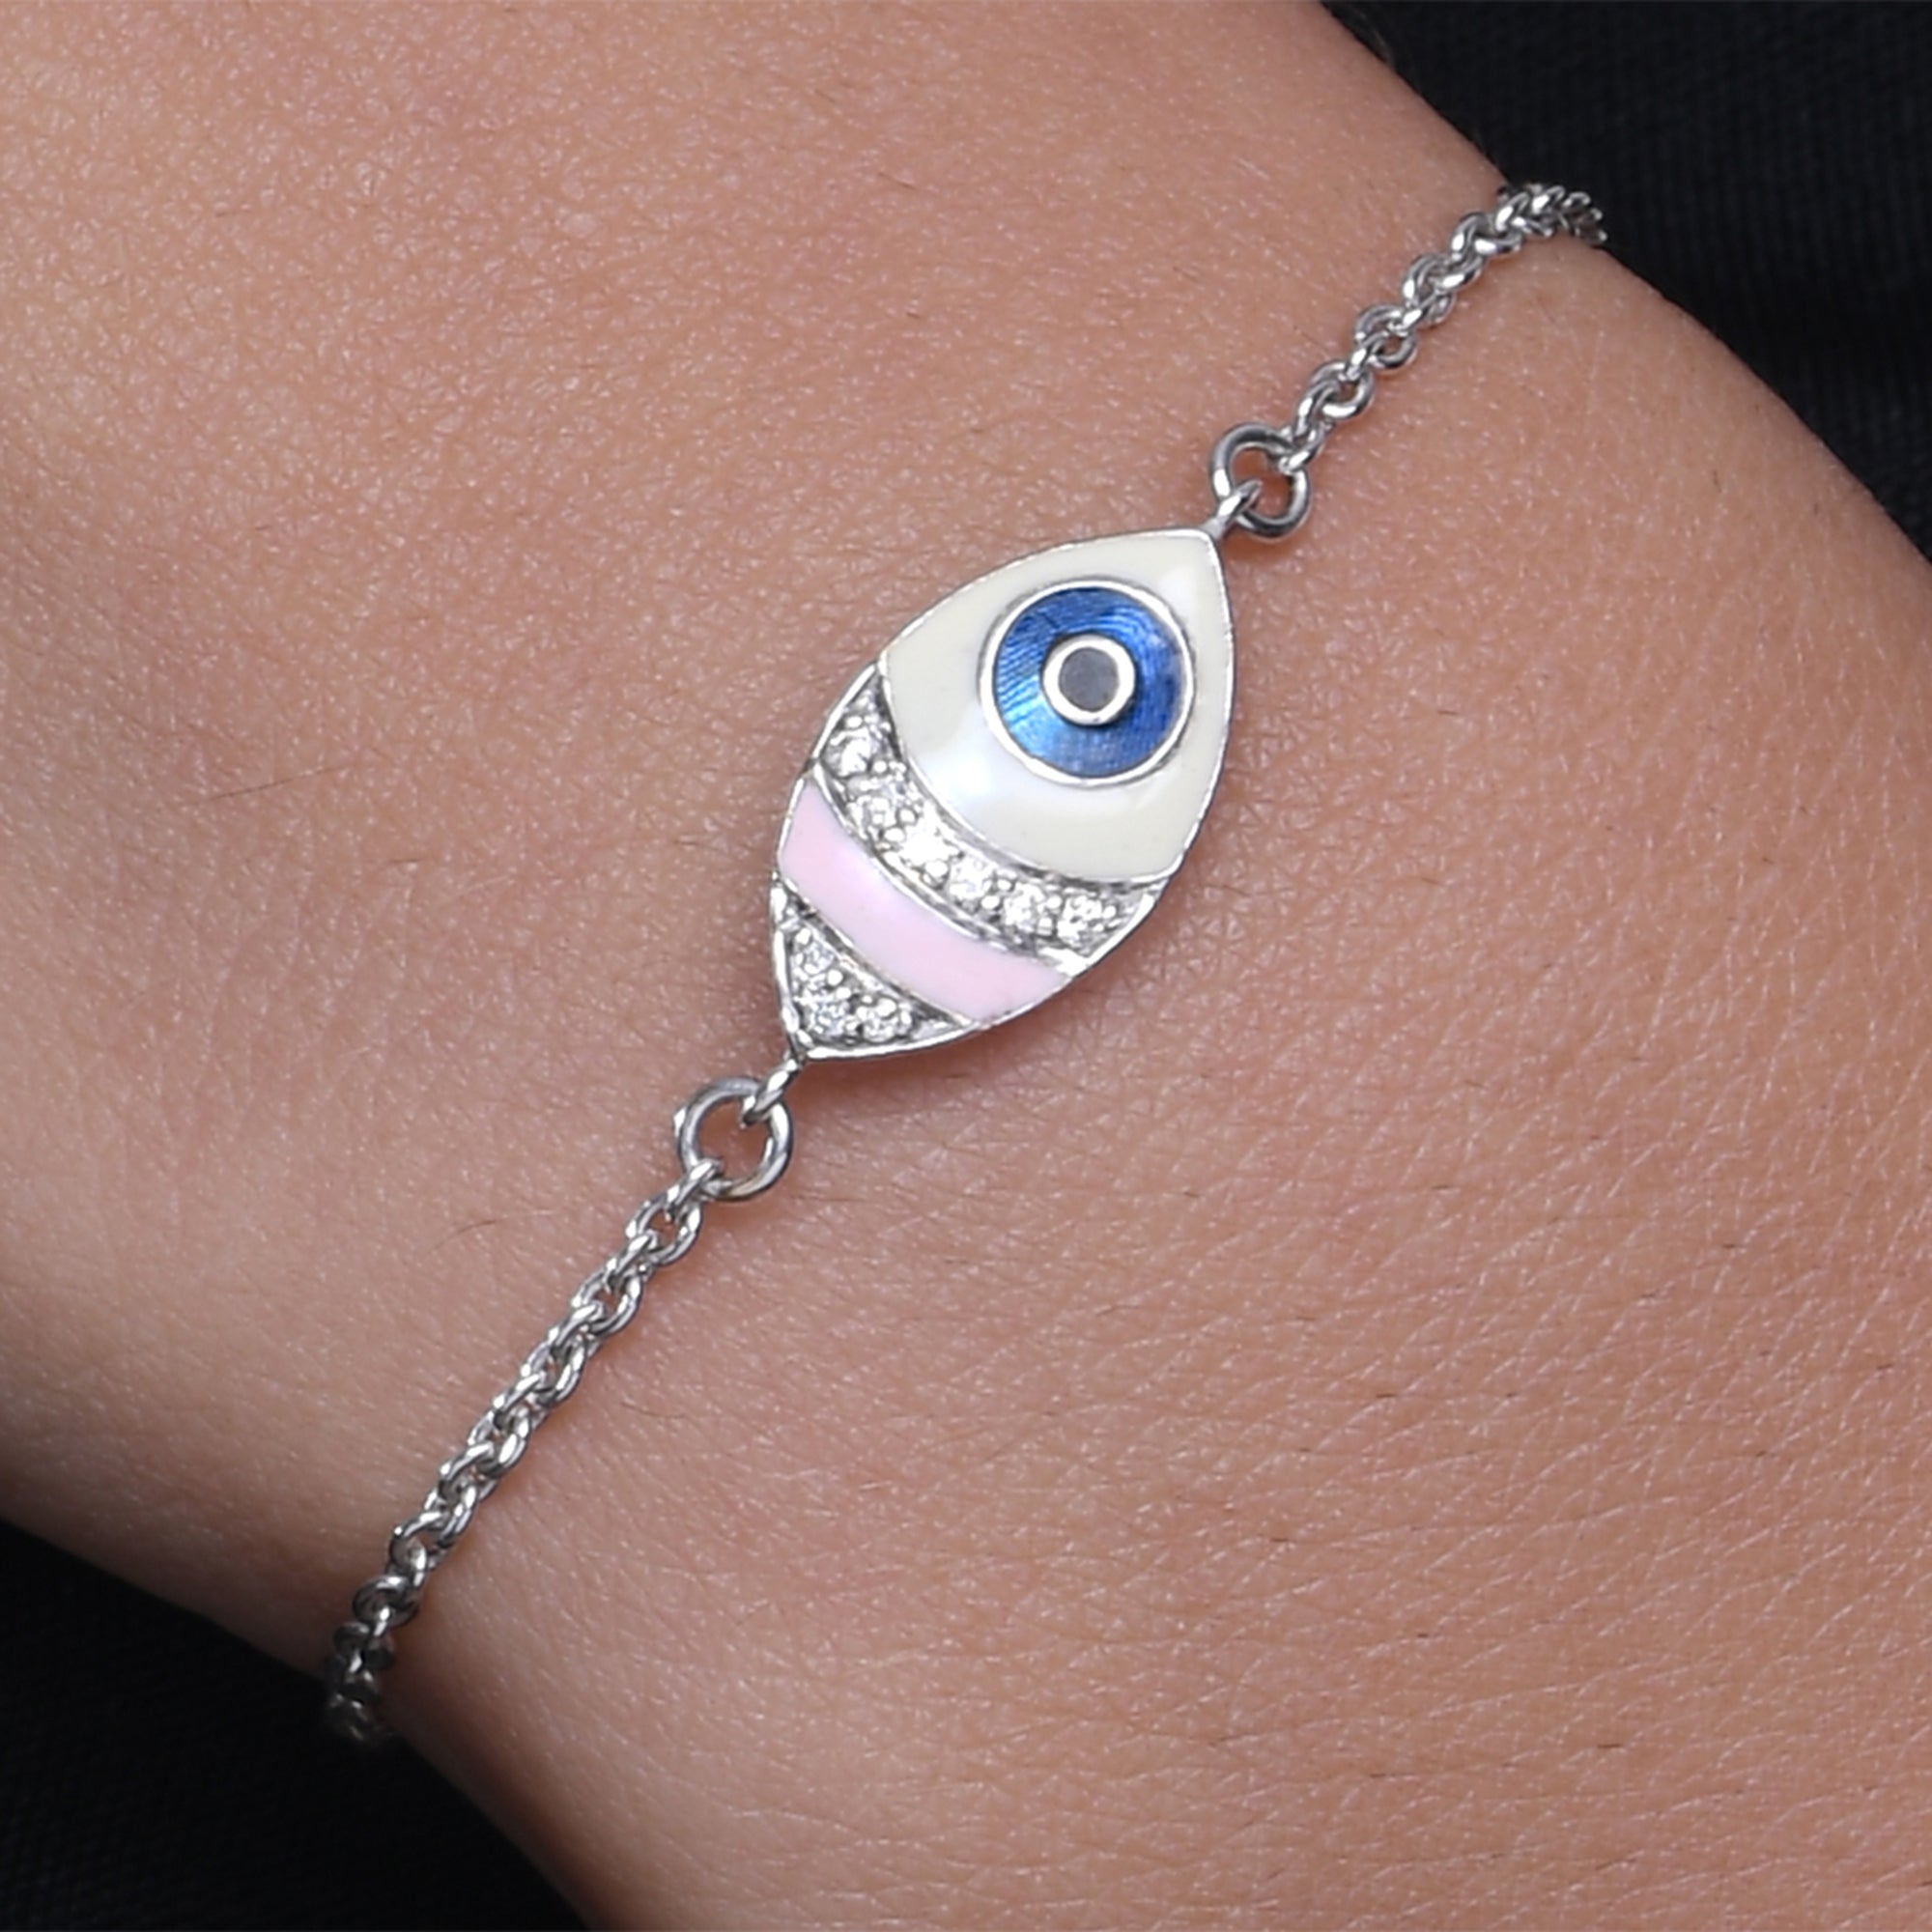 Marquise Enamel Evil Eye Diamond Chain Bracelet